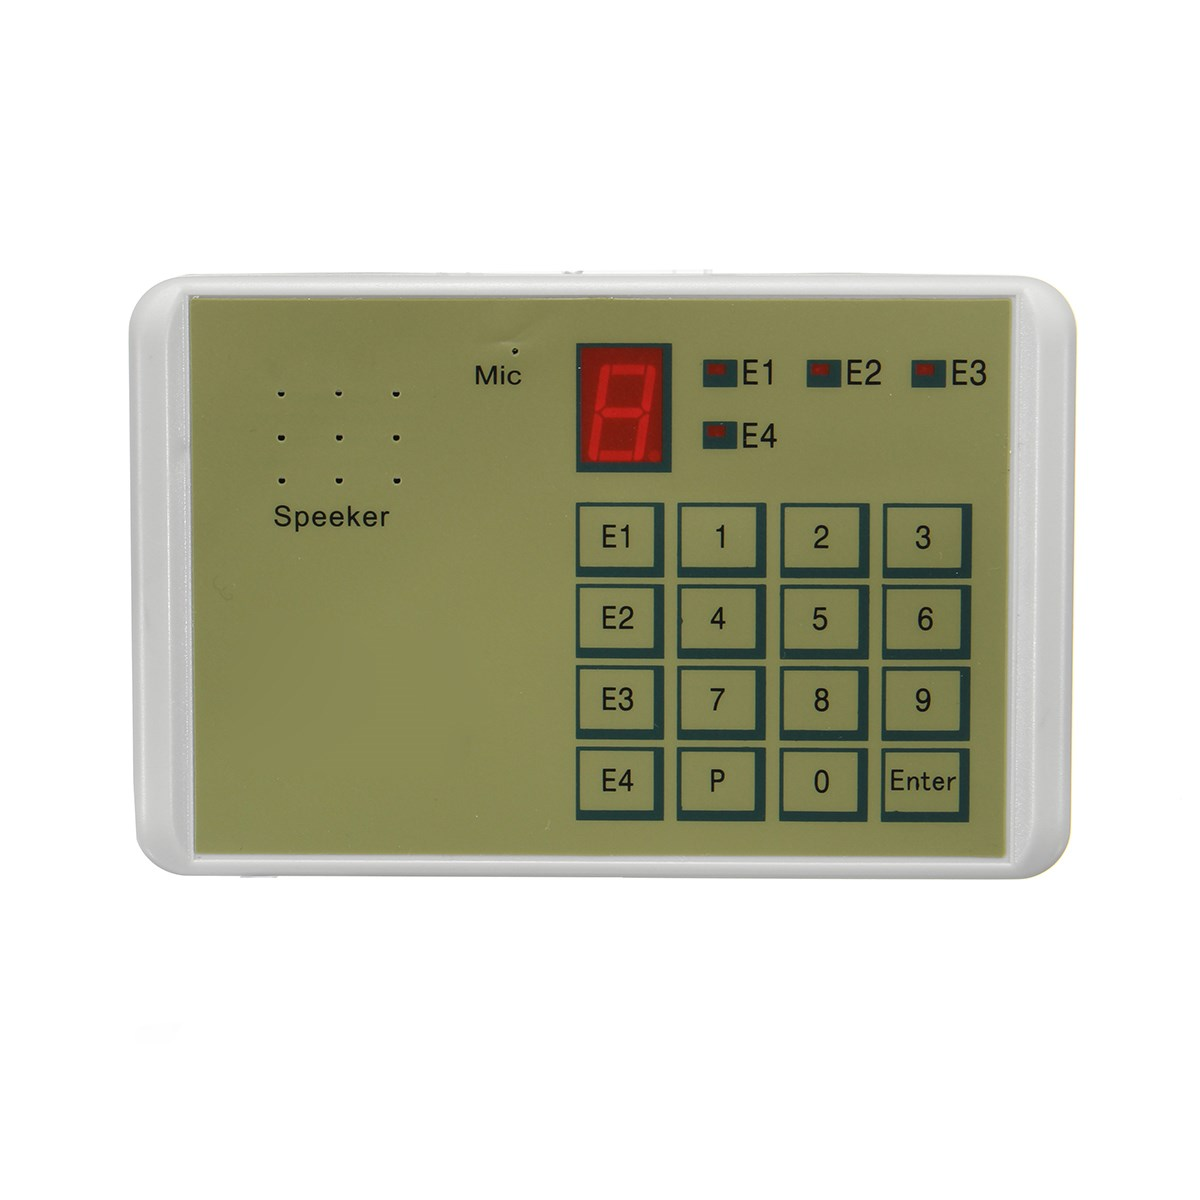 Telephone Voice Dialing Automatic Alarm Dialer Alarm Host Dialer Wired Voice Auto-dialer Burglar Security House System